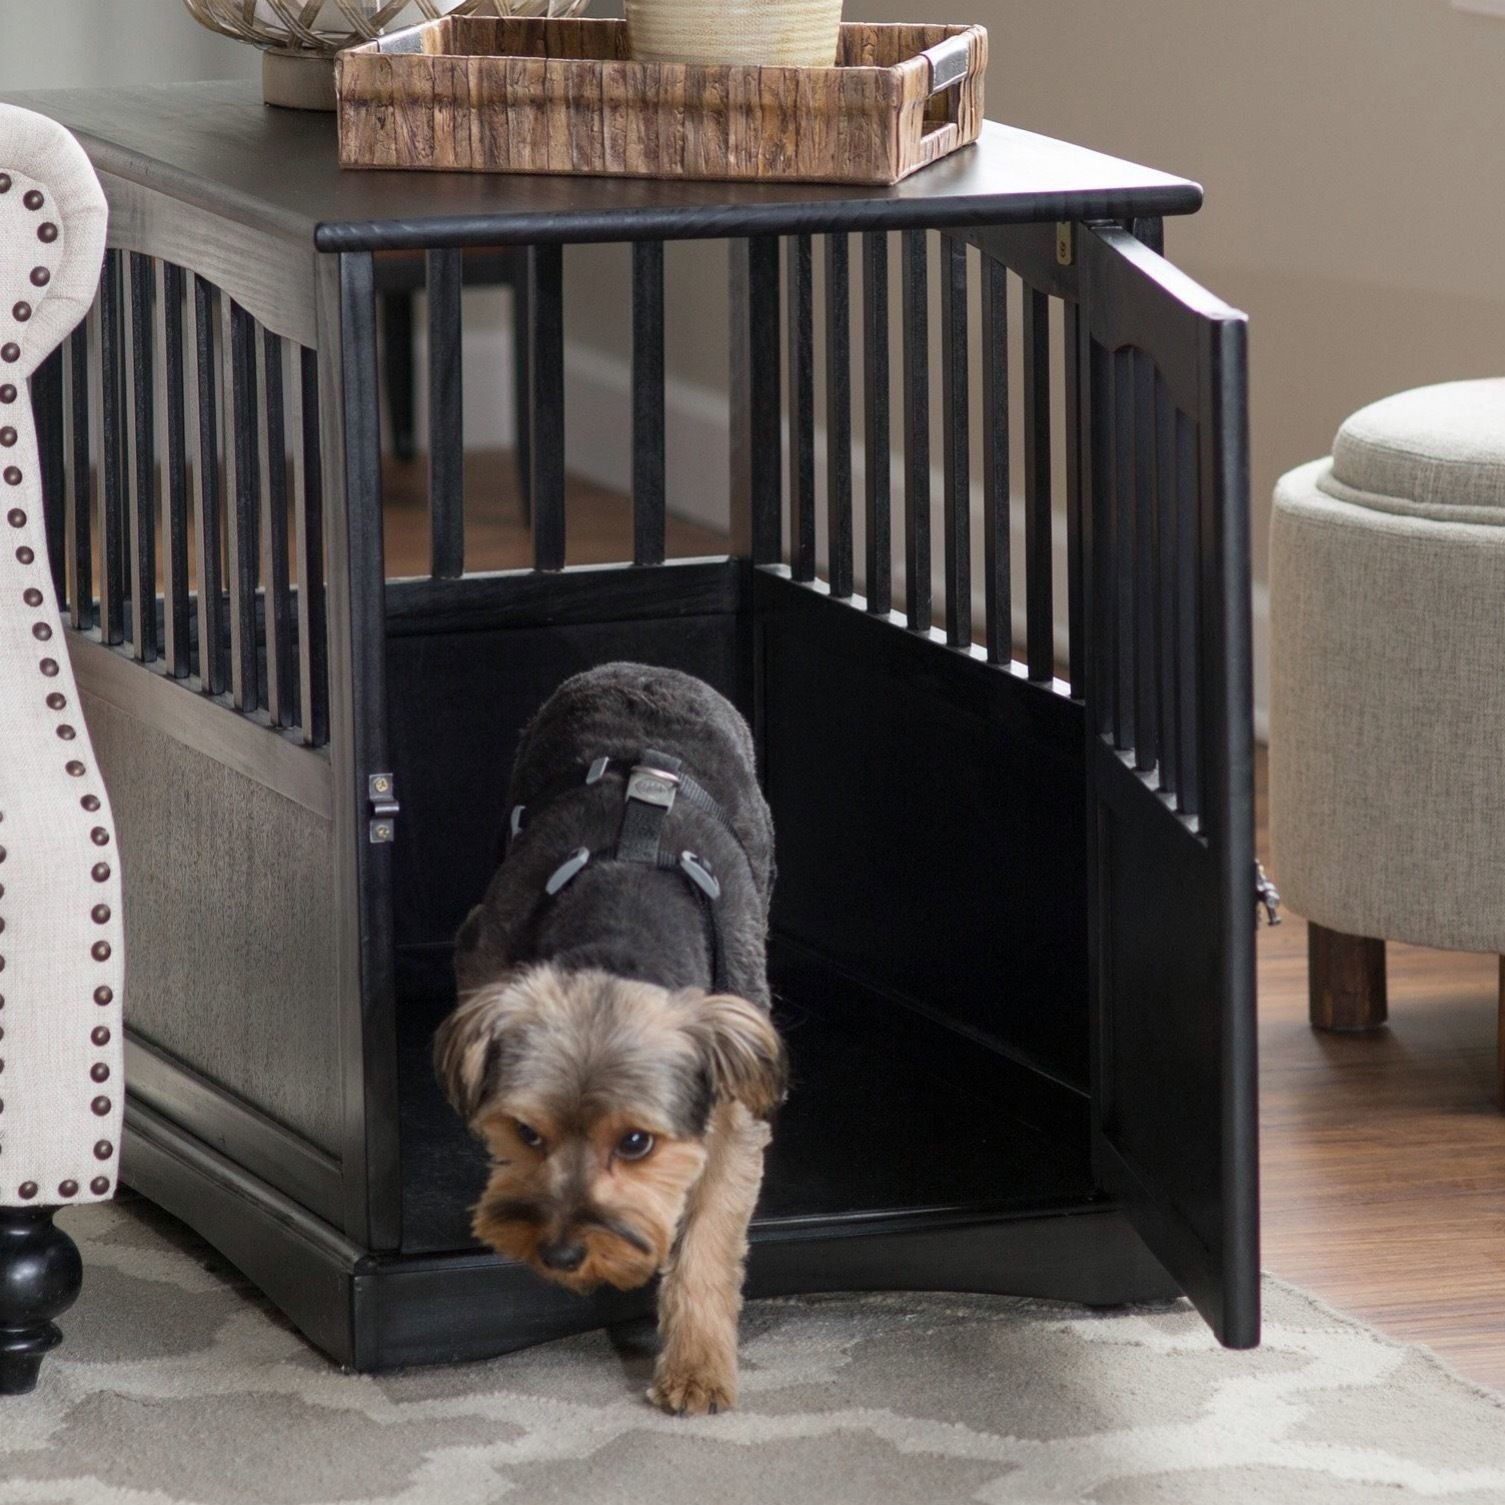 Dog Crate Kennel Cage Bed Night Stand End Table Wood Furniture Cave House Room Large size / Black. by Newport